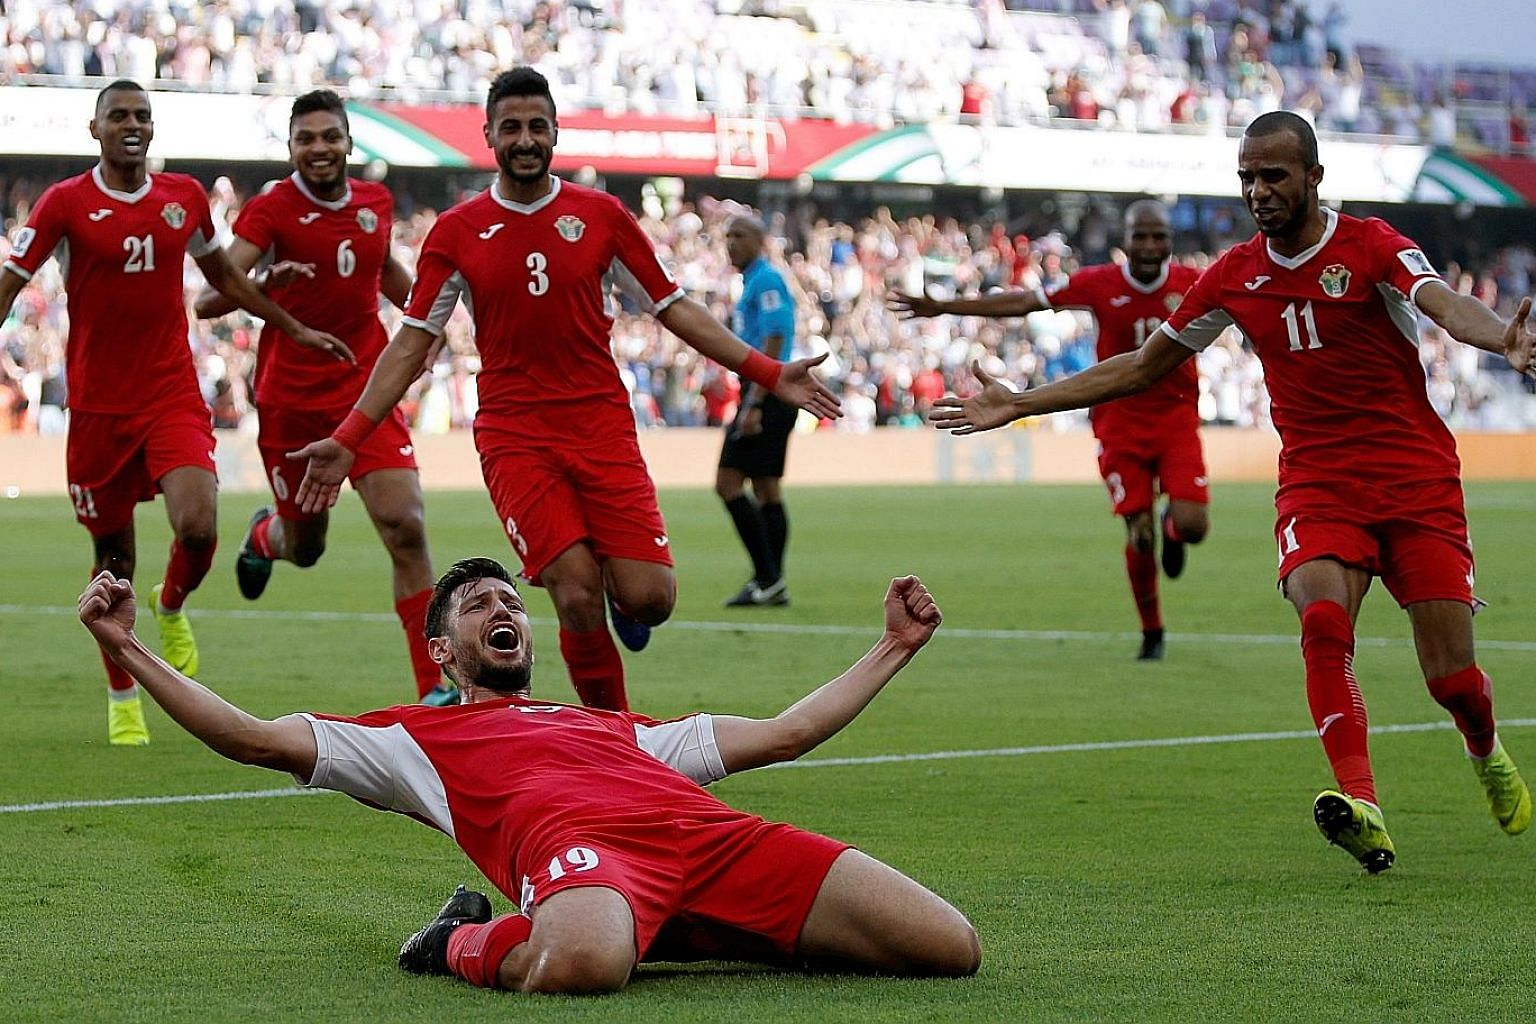 Anas Bani Yaseen expressing his delight after scoring what proved to be the winner in Jordan's 1-0 upset win over defending Asian Cup champions Australia in their Group B opener yesterday.